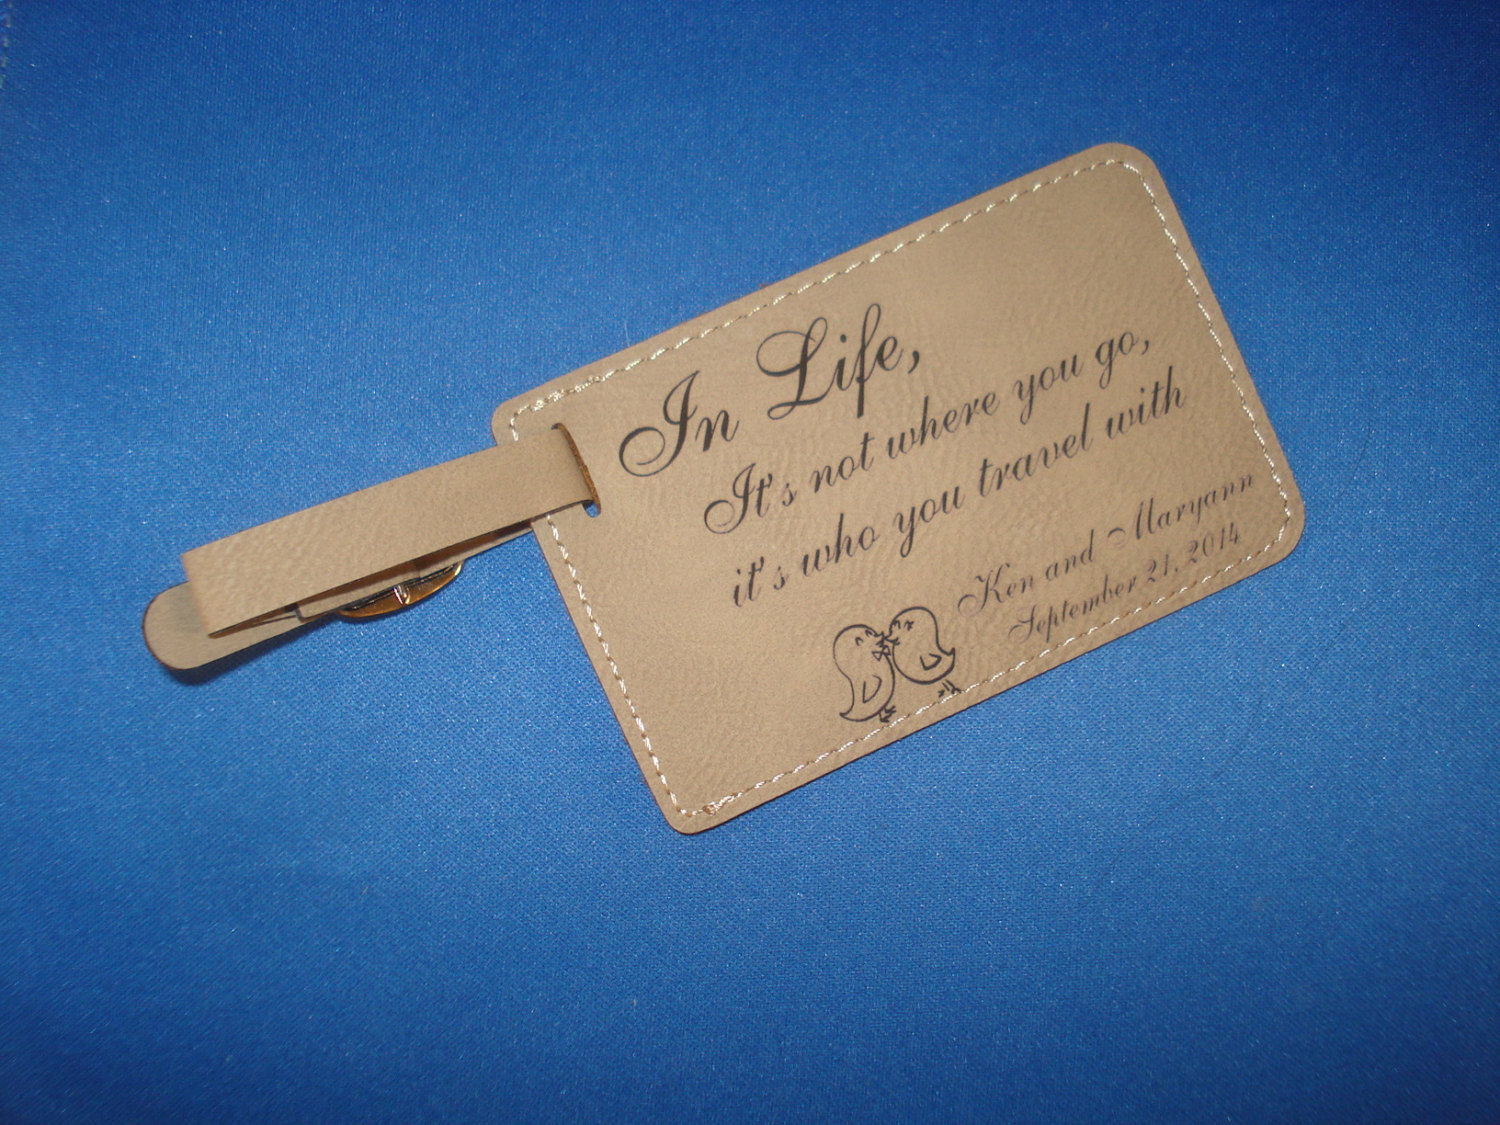 Personalized Luggage Tags Wedding Favors Canada : 100 Custom WEDDING FAVORSLeatherette Luggage Tags personalized with ...